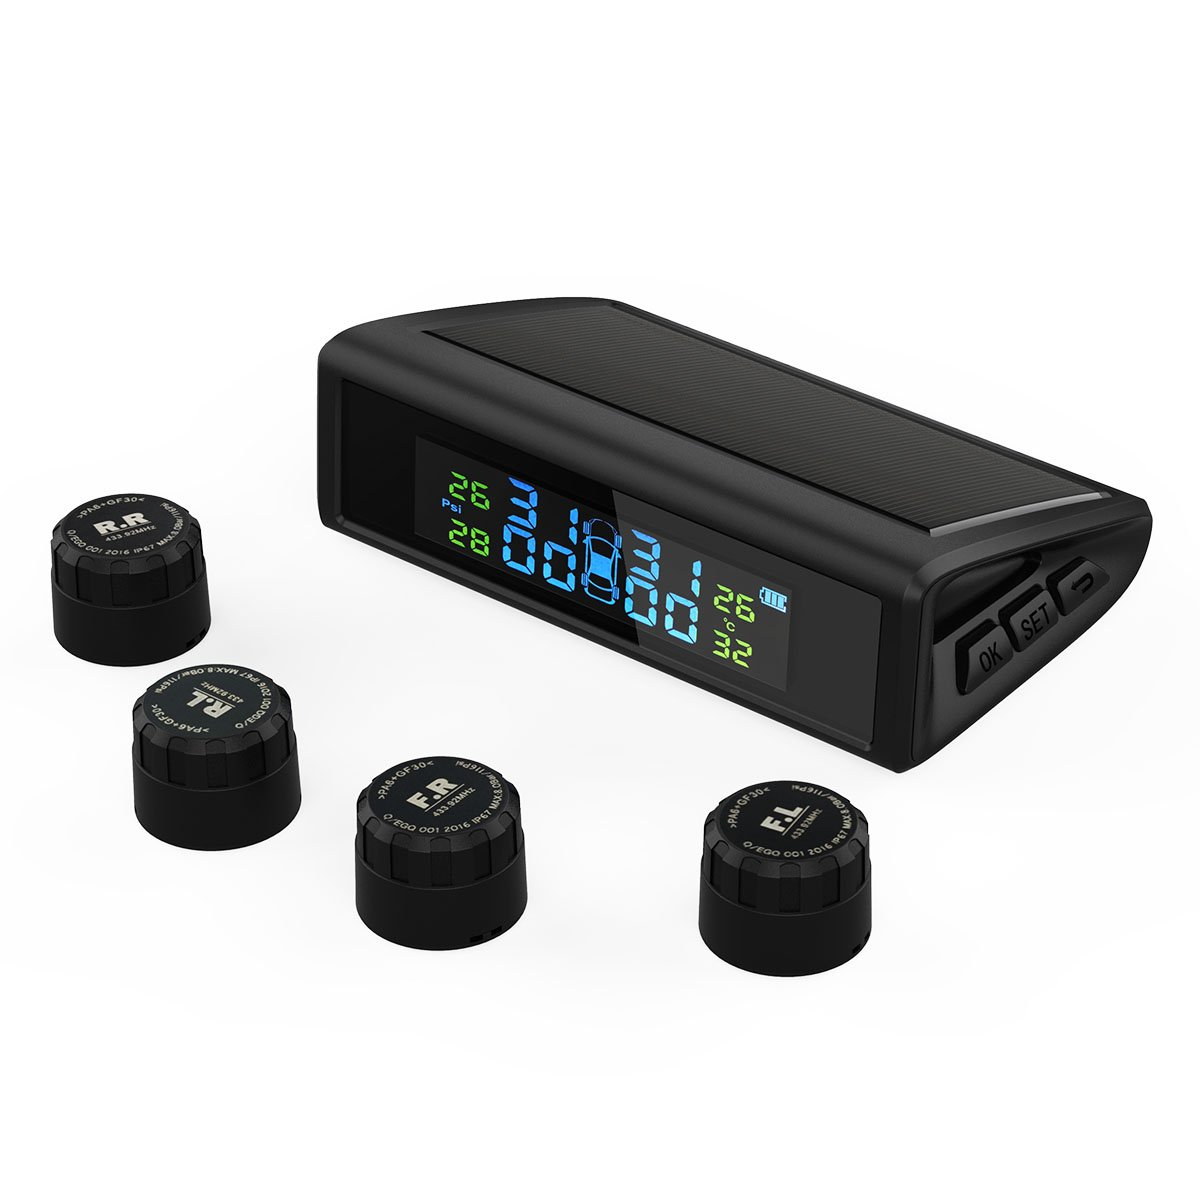 HiGoing Tire Pressure Monitoring System, Solar Wireless TPMS Built-in 450mAh Battery, 4 External Sensors (0-8.0 Bar/0-116 Psi, 49-85℉/65-85℃), 6 Alarms Real-time High Monitor Temperature & Pressure